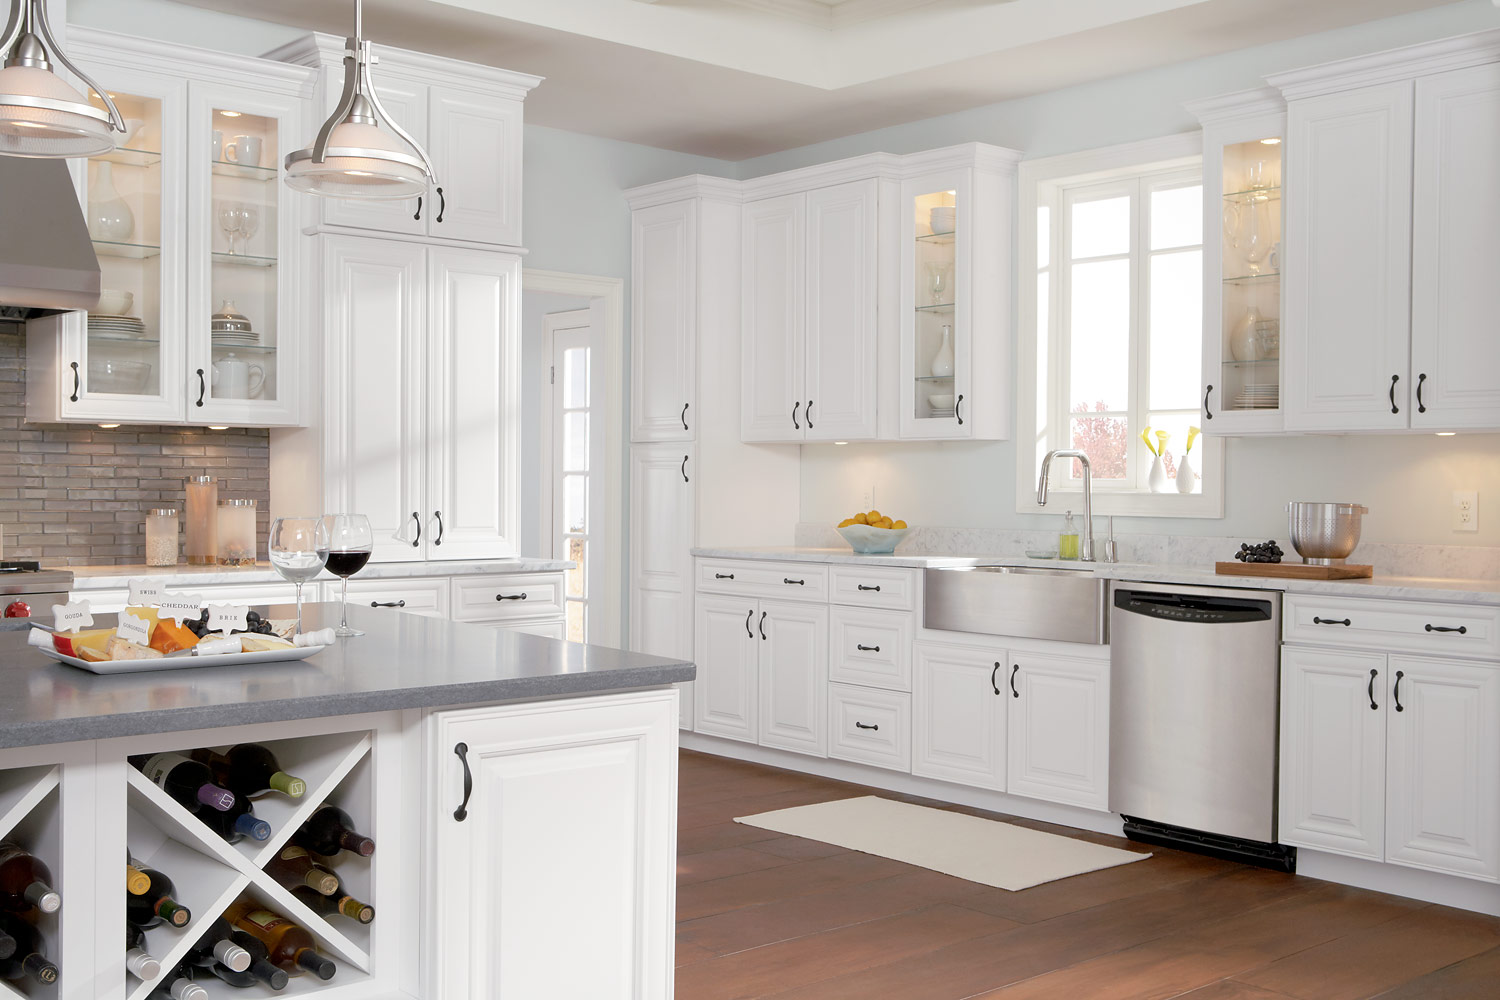 wonderful kitchen american woodmark cabinets in white with white handle and countertop plus sink and kitchen faucet for kitchen decor ideas